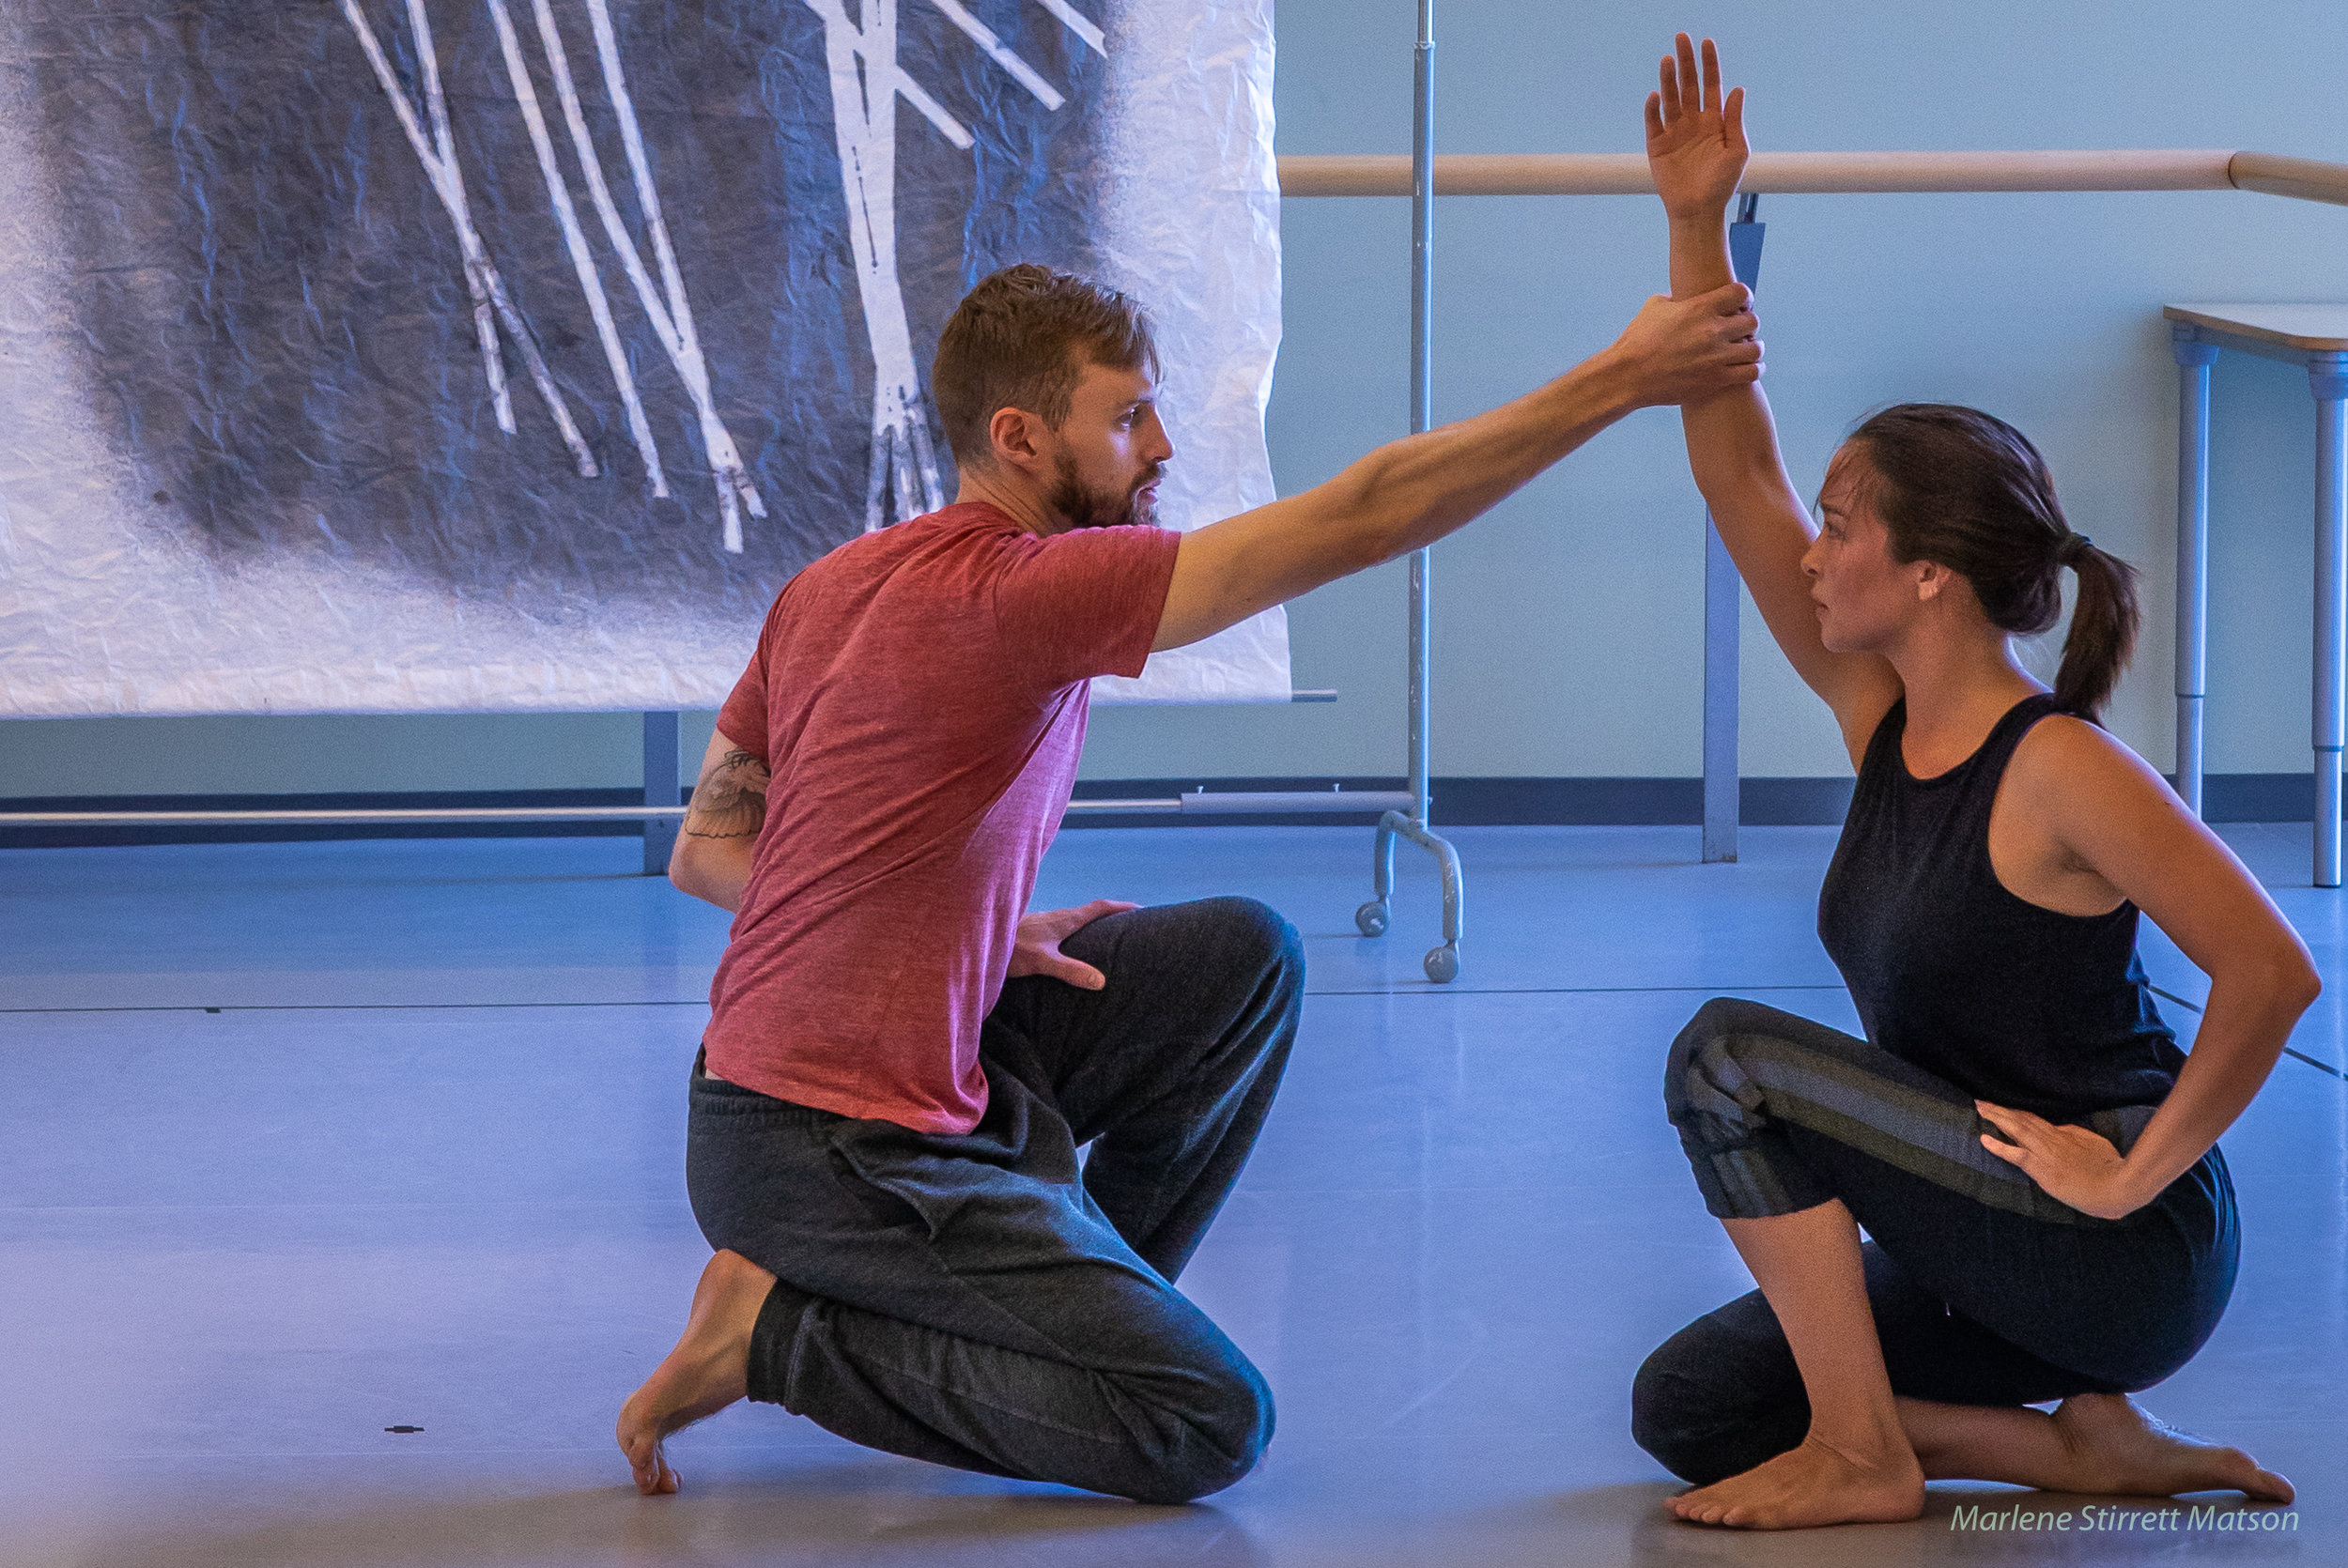 Jarrett and Sierra rehearsing at Canada's national ballet school